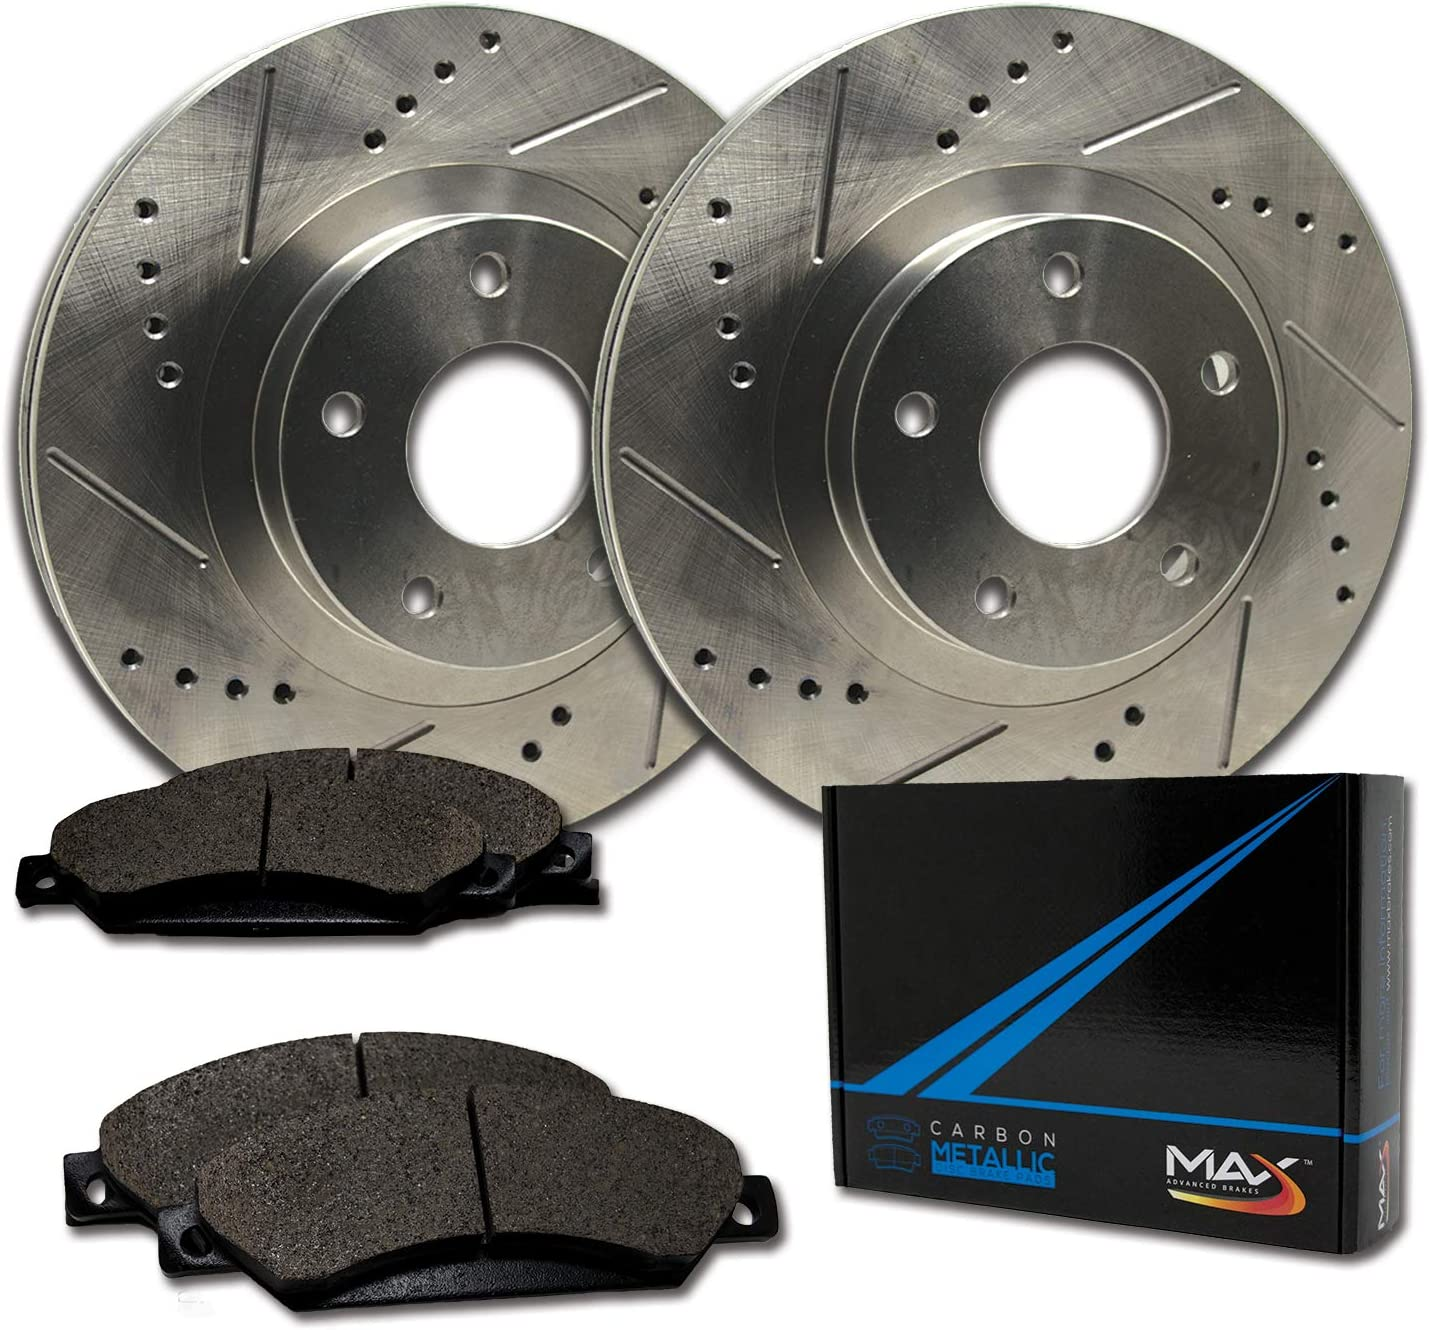 Max Brakes Front Performance Brake Kit TA062031 Premium Slotted Drilled Rotors + Metallic Pads Fits: 2011 11 2012 12 Ford Fusion